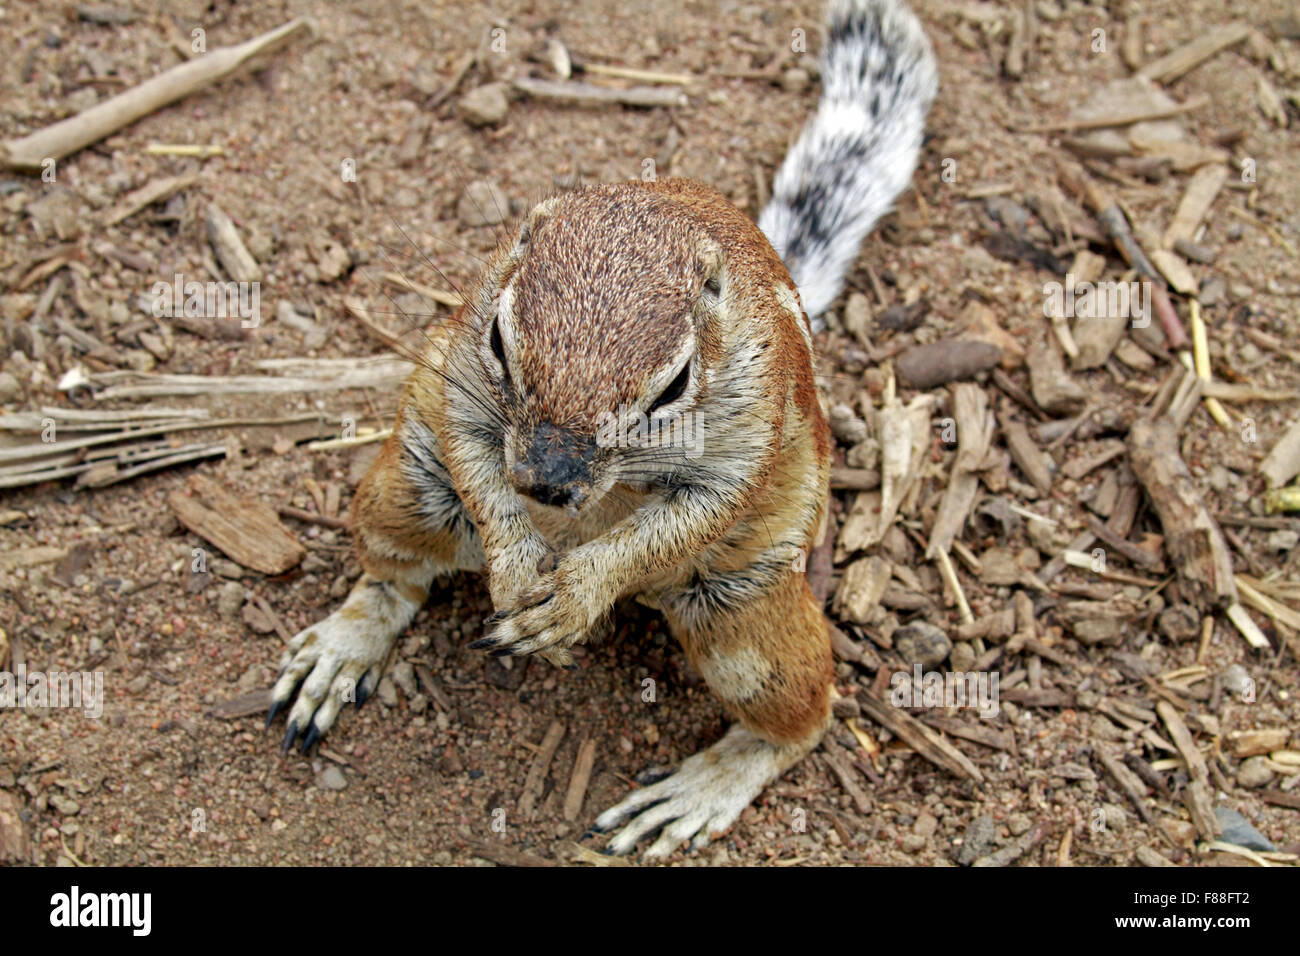 A Ground Squirrel (Sciuridae) at The Giraffe House Wildlife Awareness centre,Western Cape Province, South Africa. - Stock Image